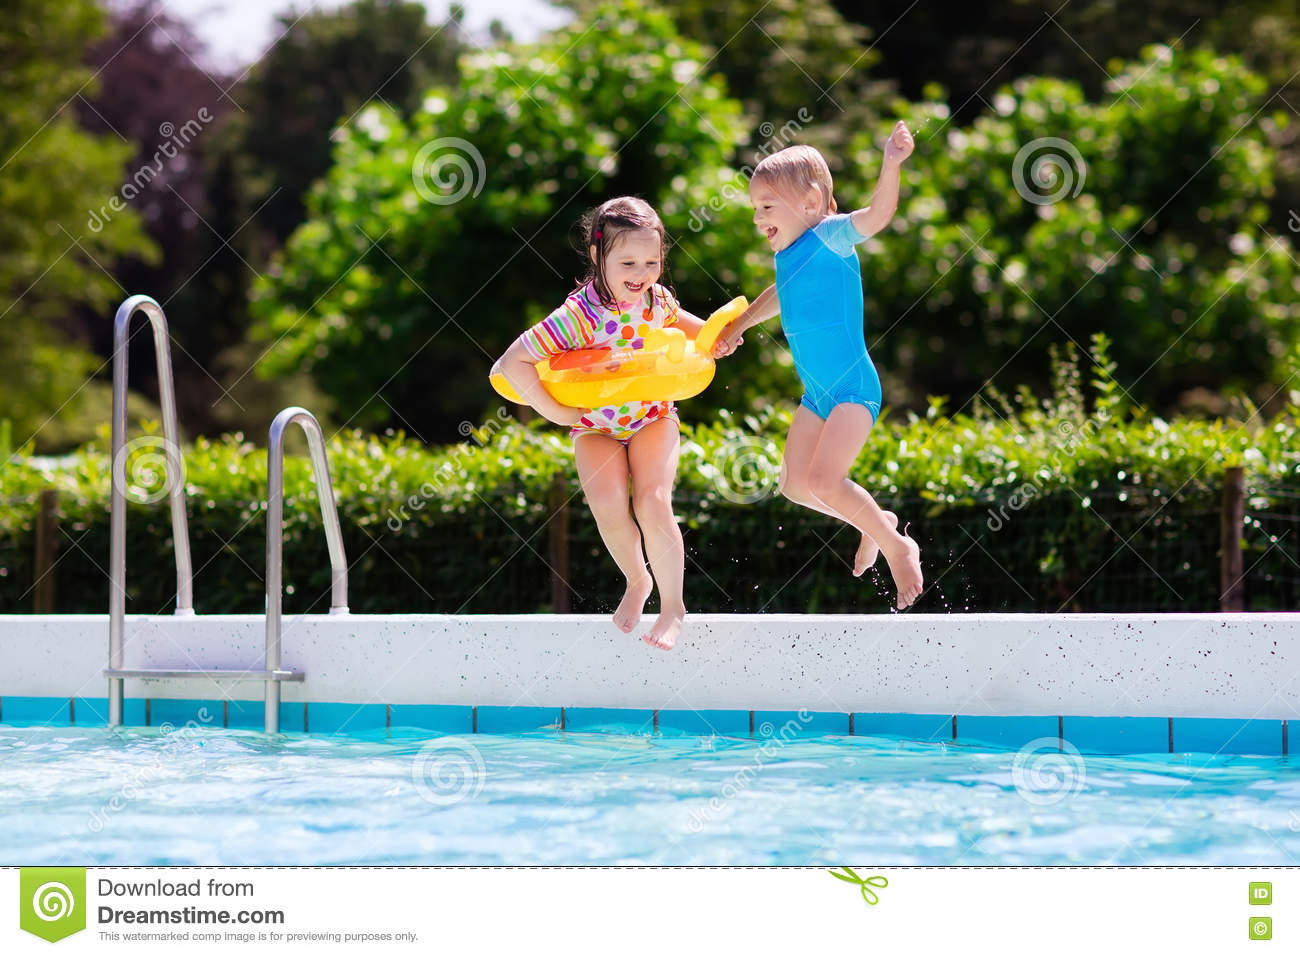 Funnygames Zwembad Springen Kids Jumping Swimming Pool Stock Images Download 623 Royalty